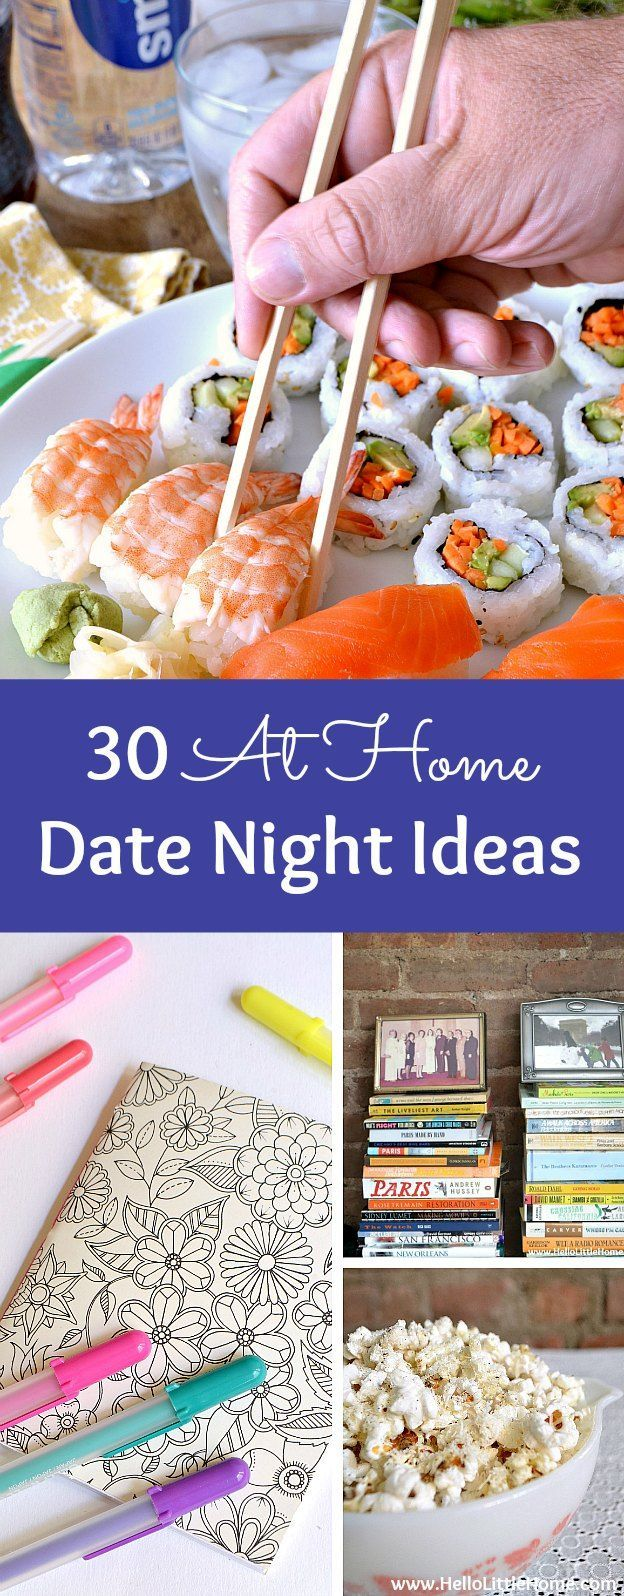 30 Easy At Home Date Night Ideas! Save a little money and plan a creative, fun, and romantic stay at home date night! Perfect for married couples or any busy couple. Skip the babysitter, put the kids to bed, and try these simple tips for spending quality with your sweetie!   Hello Little Home AD